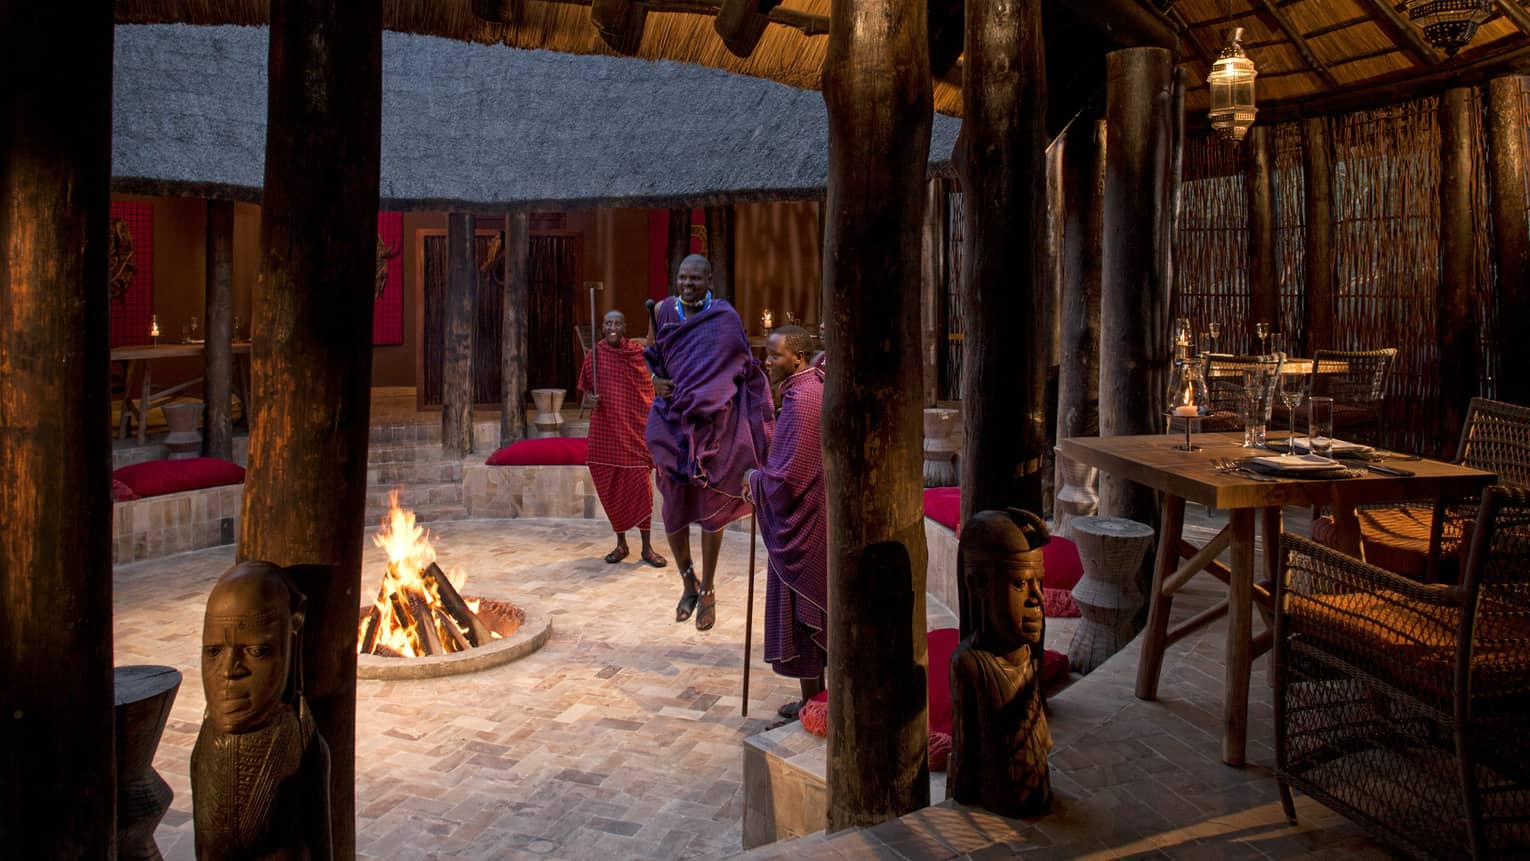 Maasai perform around a fireplace under a thatched hut with rustic tables and chairs at Boma Grill